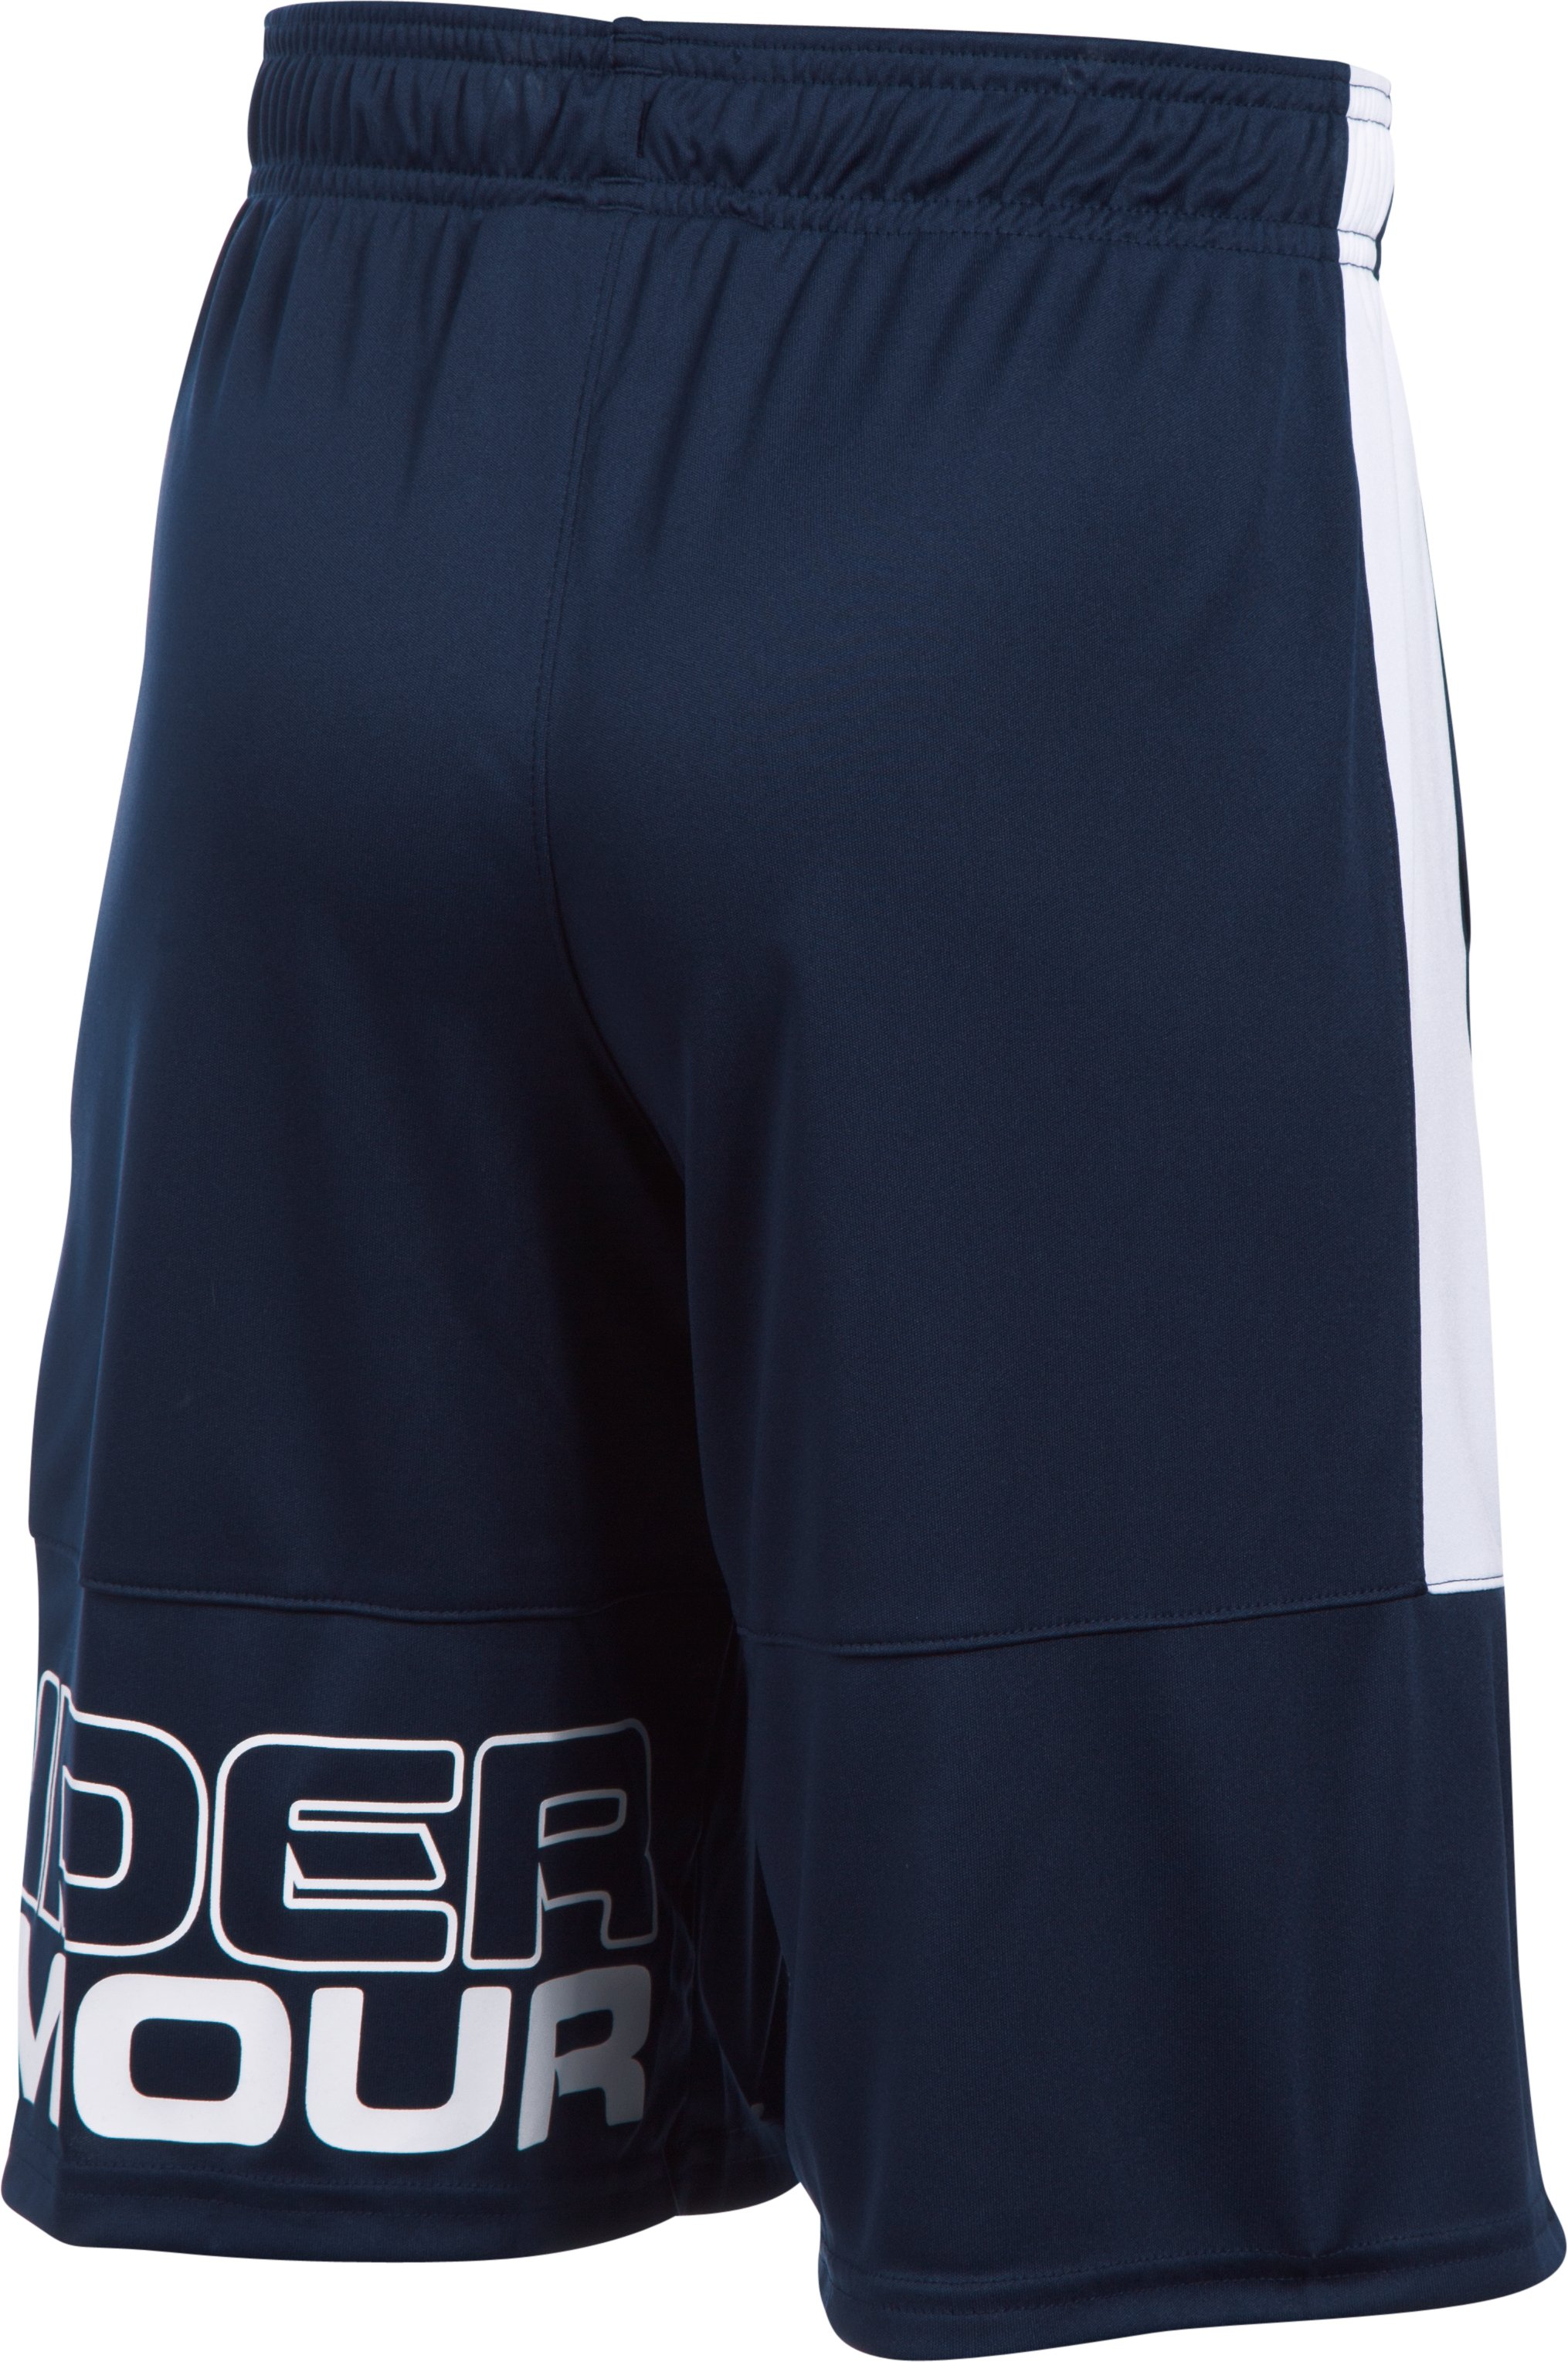 Boys' UA Stunt Shorts, Midnight Navy